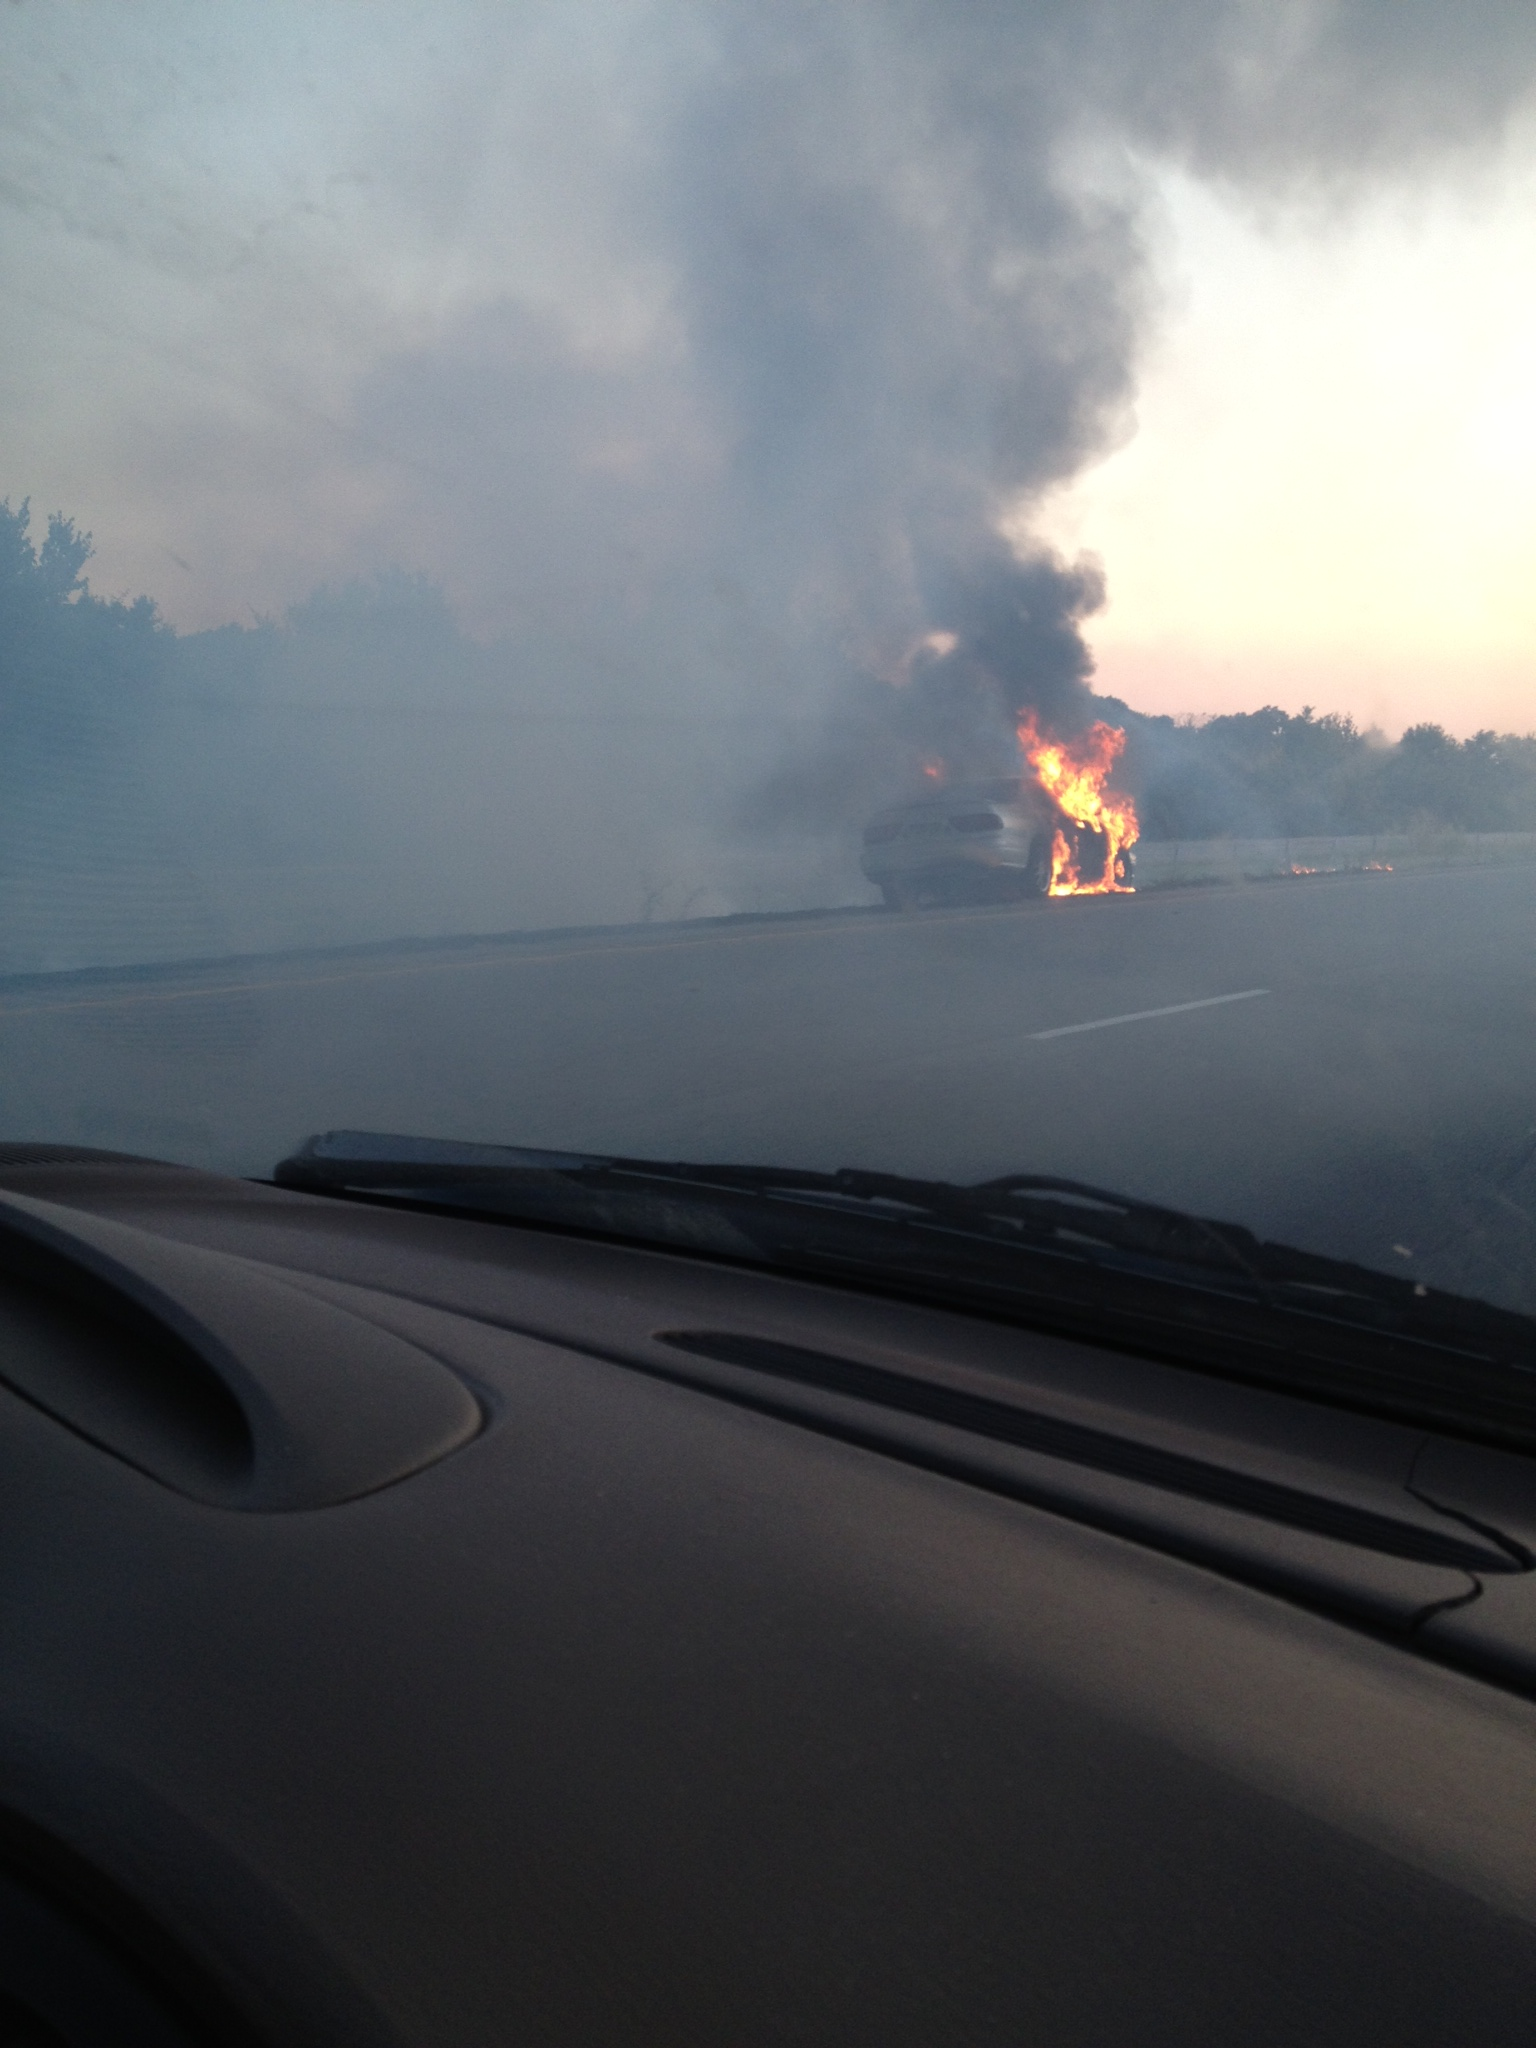 Viewer ipix from I-540 after car catches fire on Monday night.